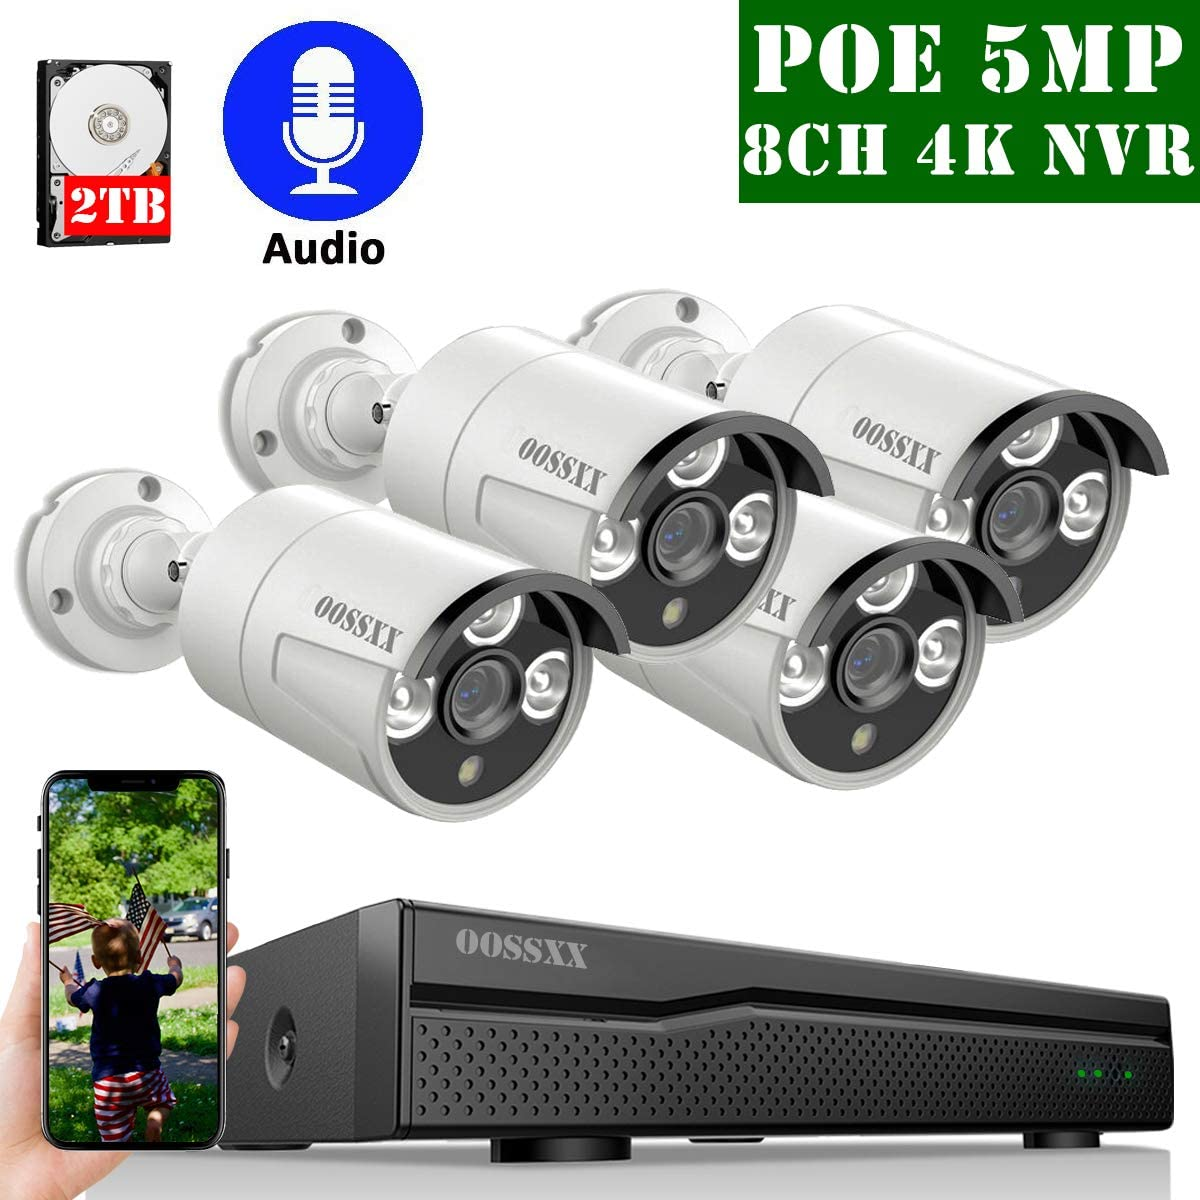 4K 8ch POE NVR Security Camera Systems Outdoor Wired,OOSSXX IP Video Security Camera System POE 4K,Wired 4 Channel 5MP POE Security IP Camera Outdoor Surveillance System,One-Way Audio,2TB Hard Drive